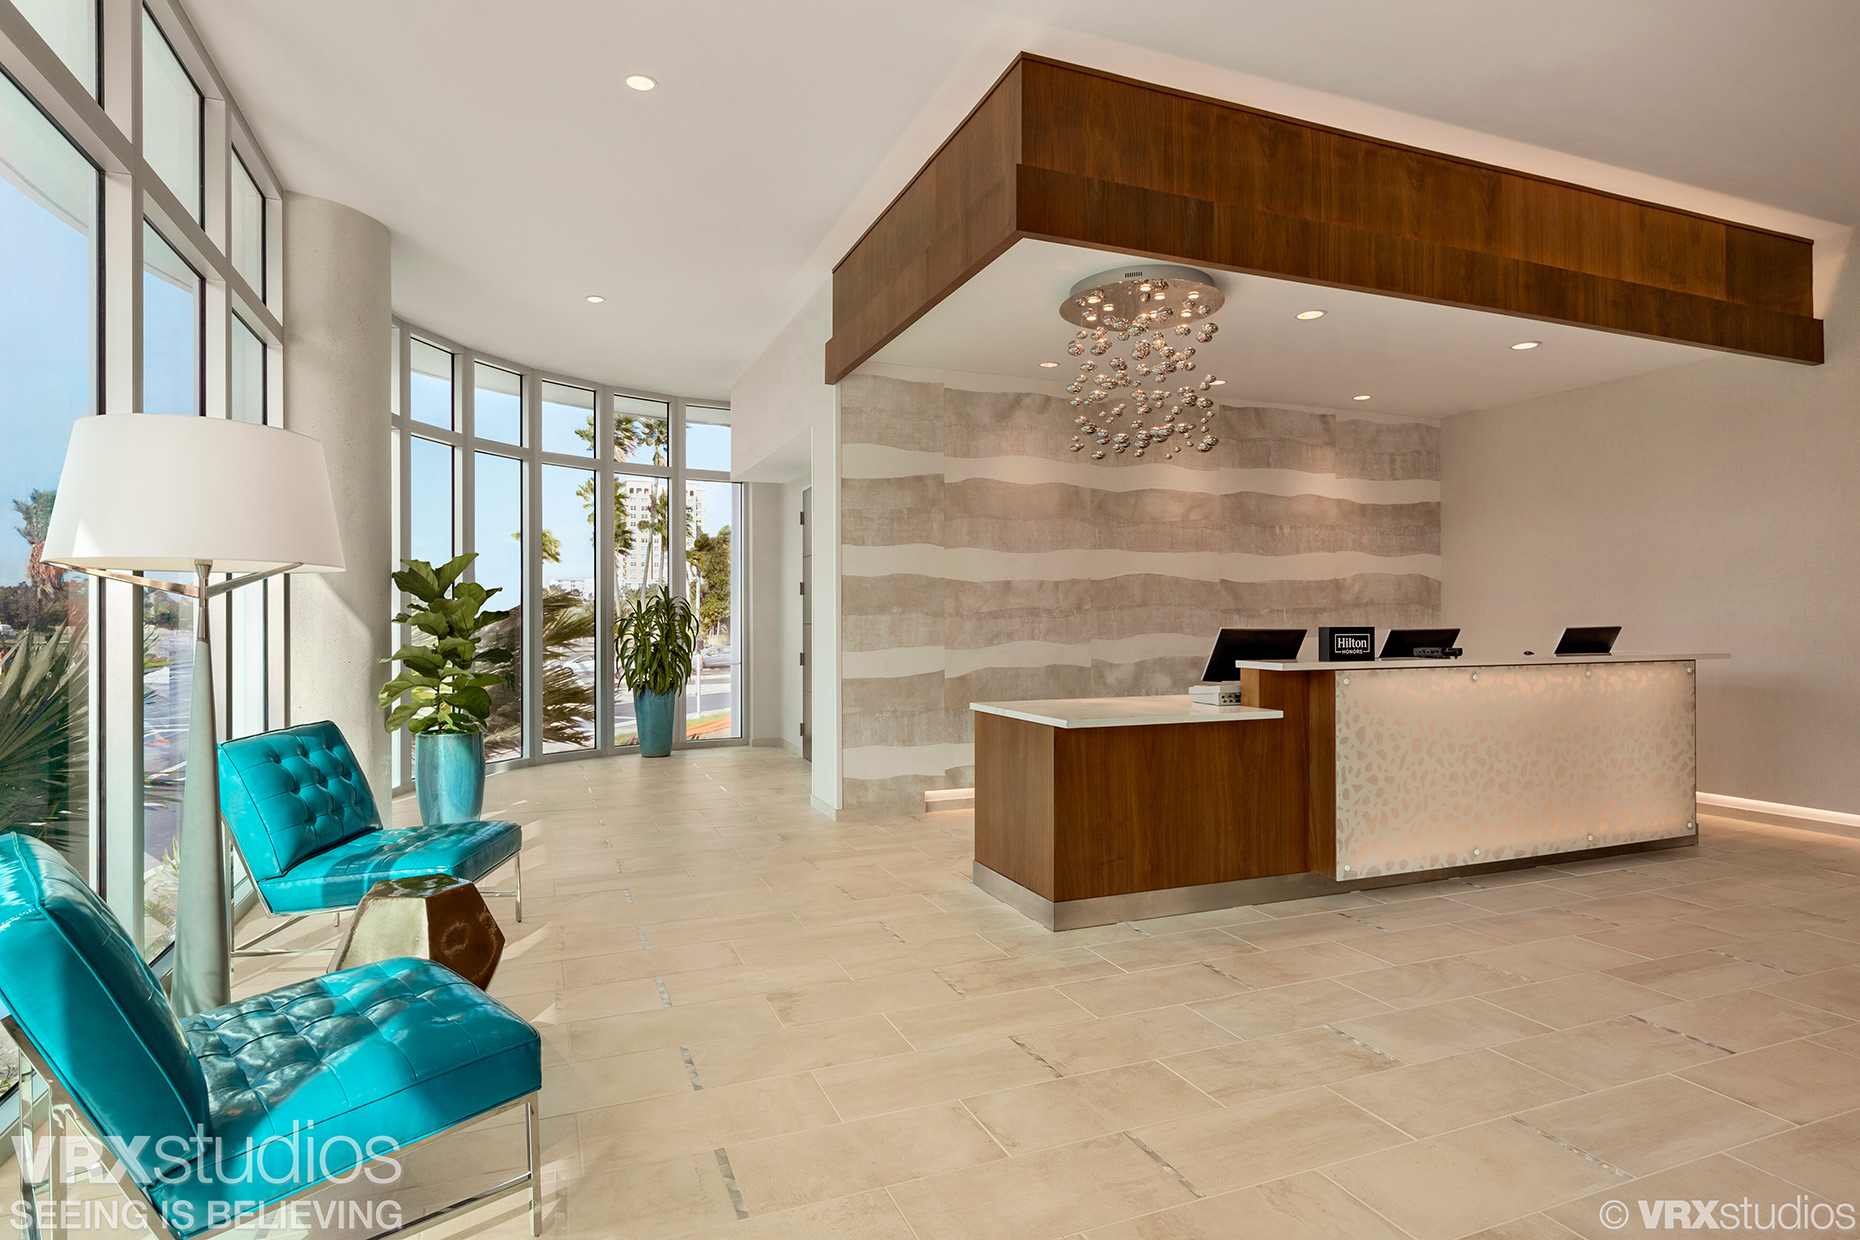 The lobby of the Embassy Suites Sarasota hotel - Tom DiMatteo, Hotel and Architectural Photographer based in Austin, TX.